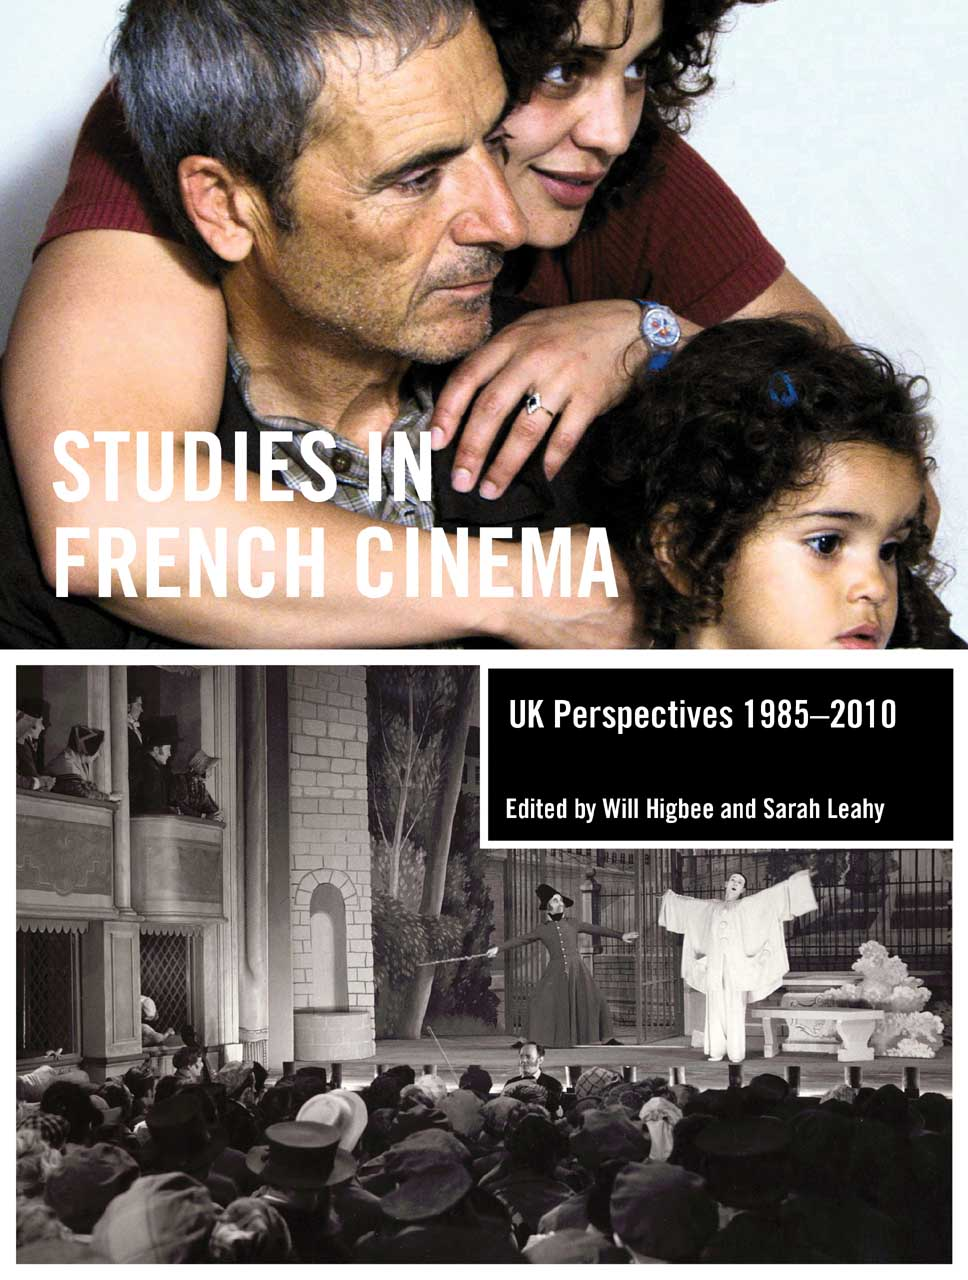 Studies in French Cinema – UK Perspectives 1985 – 2010